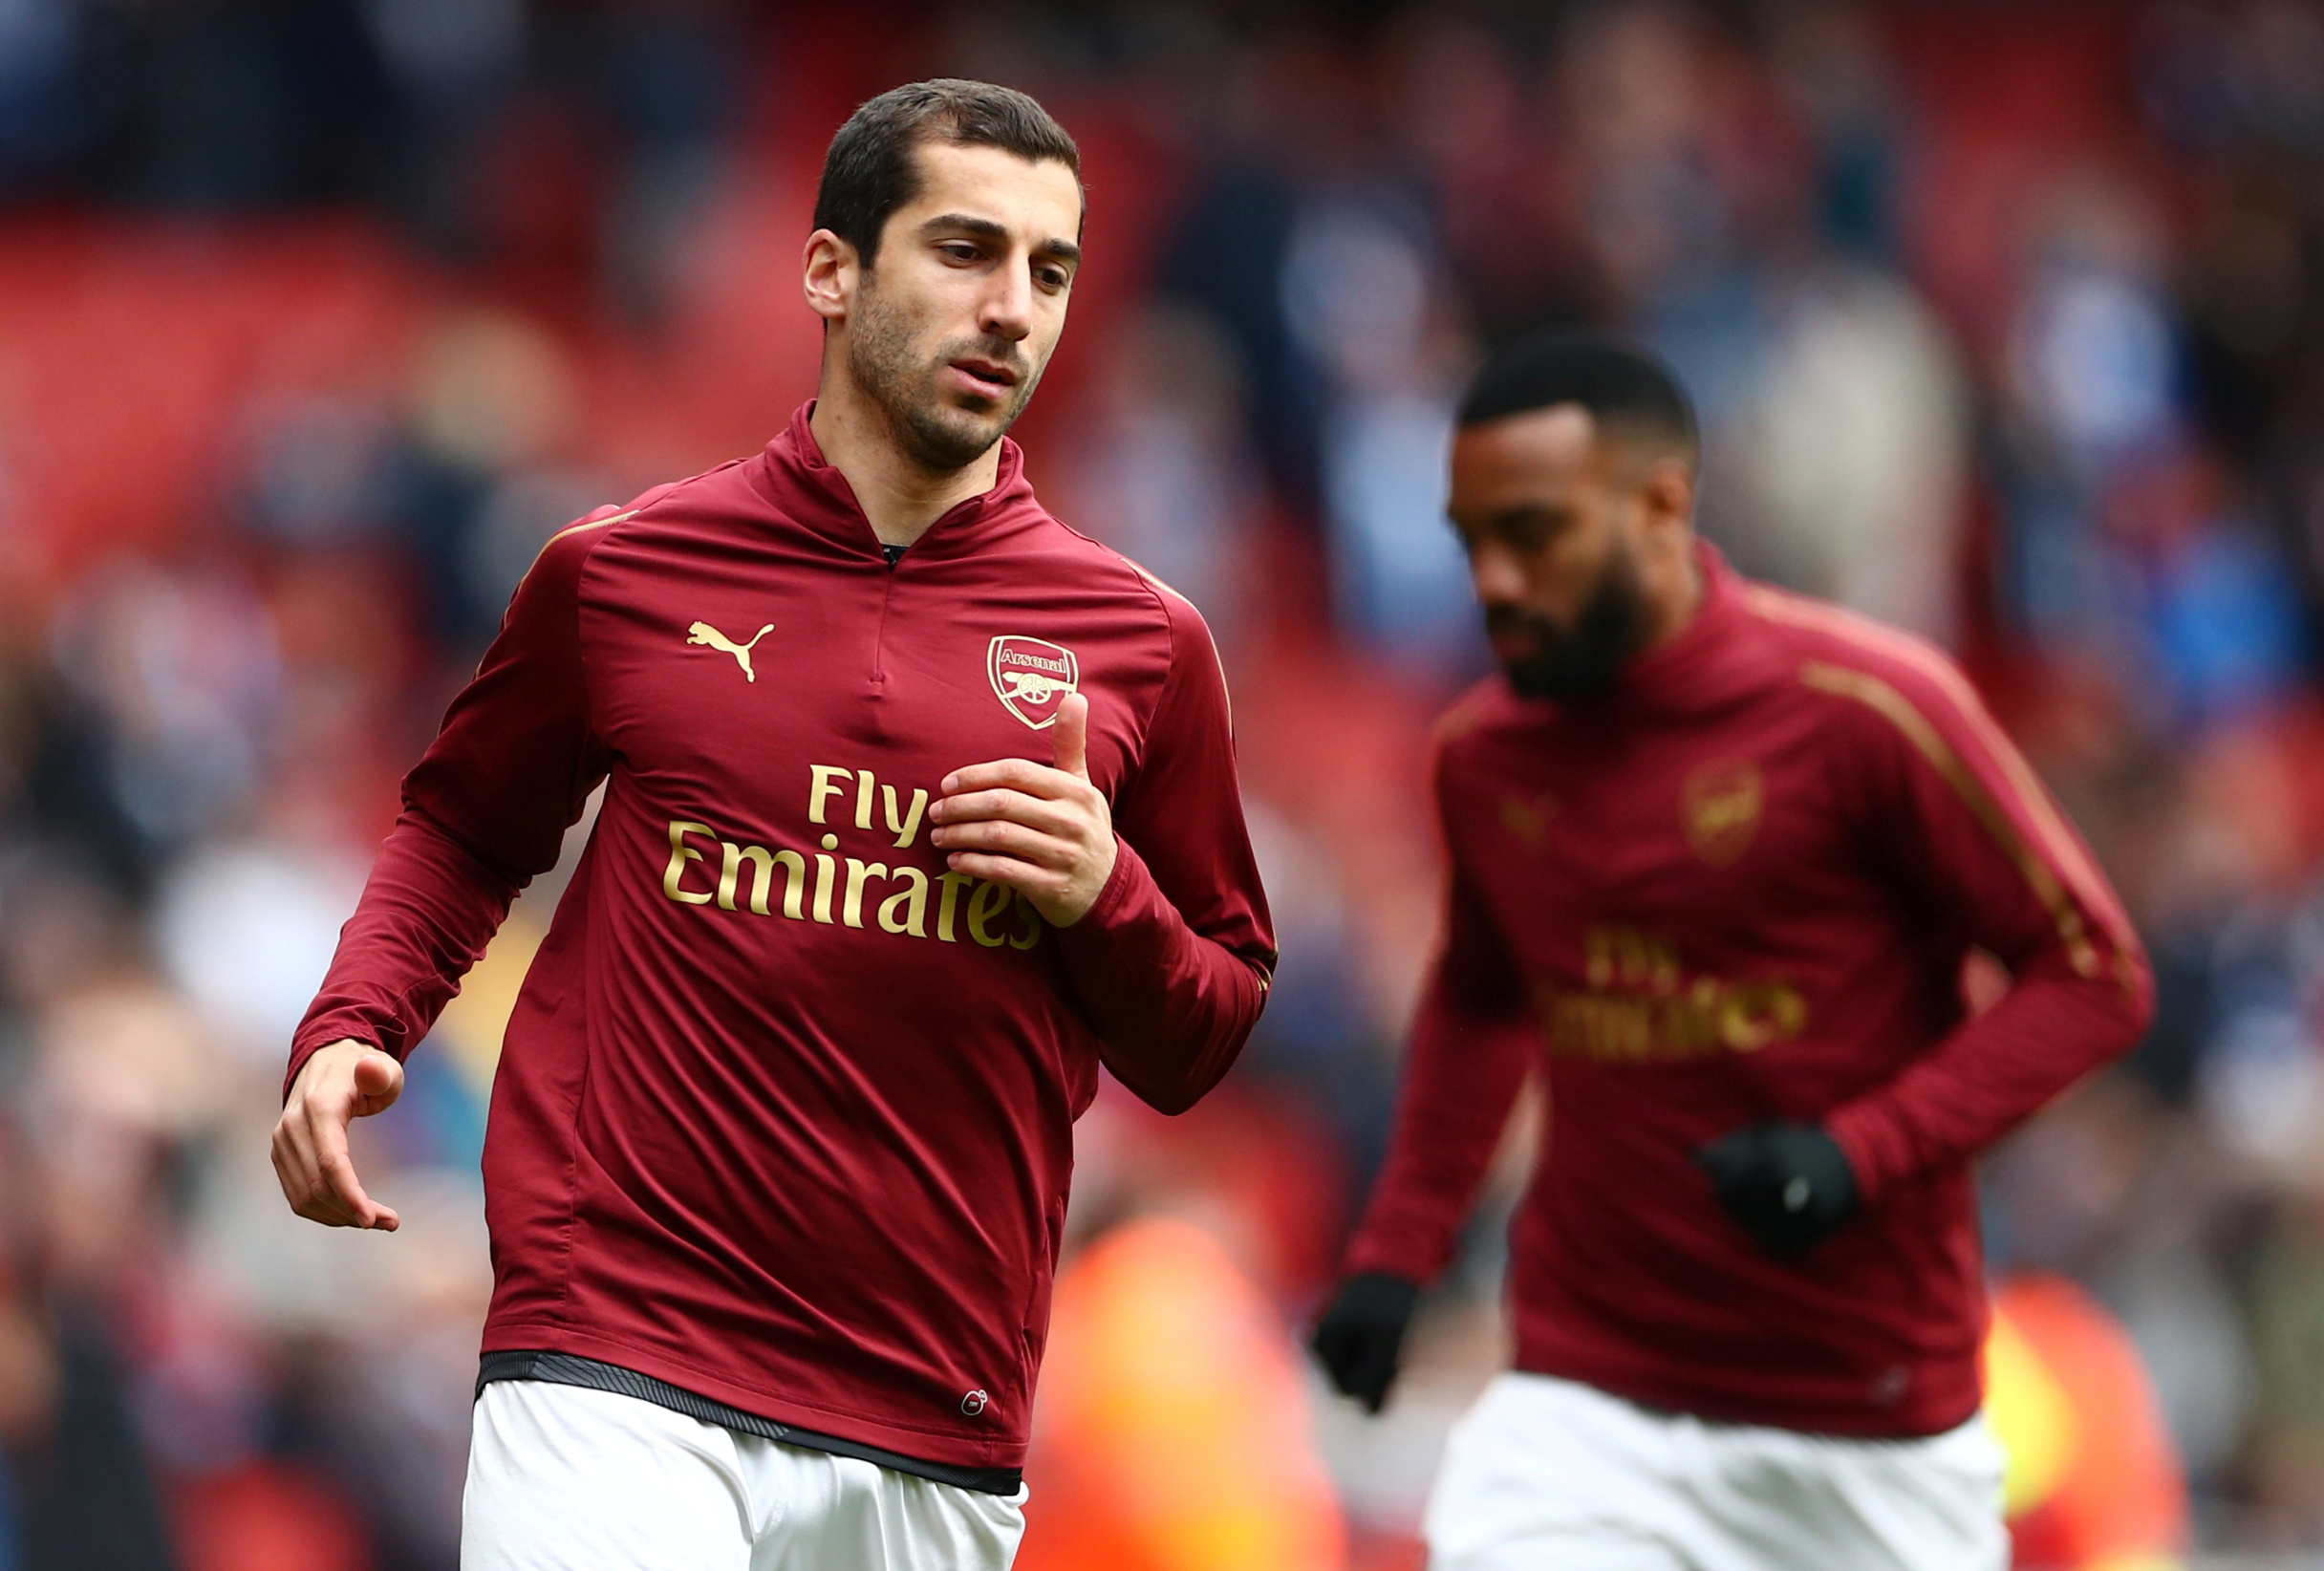 Soccer Football - Premier League - Arsenal v Brighton & Hove Albion - Emirates Stadium, London, Britain - May 5, 2019  Arsenal's Henrikh Mkhitaryan during the warm up before the match   REUTERS/Hannah McKay  EDITORIAL USE ONLY. No use with unauthorized audio, video, data, fixture lists, club/league logos or